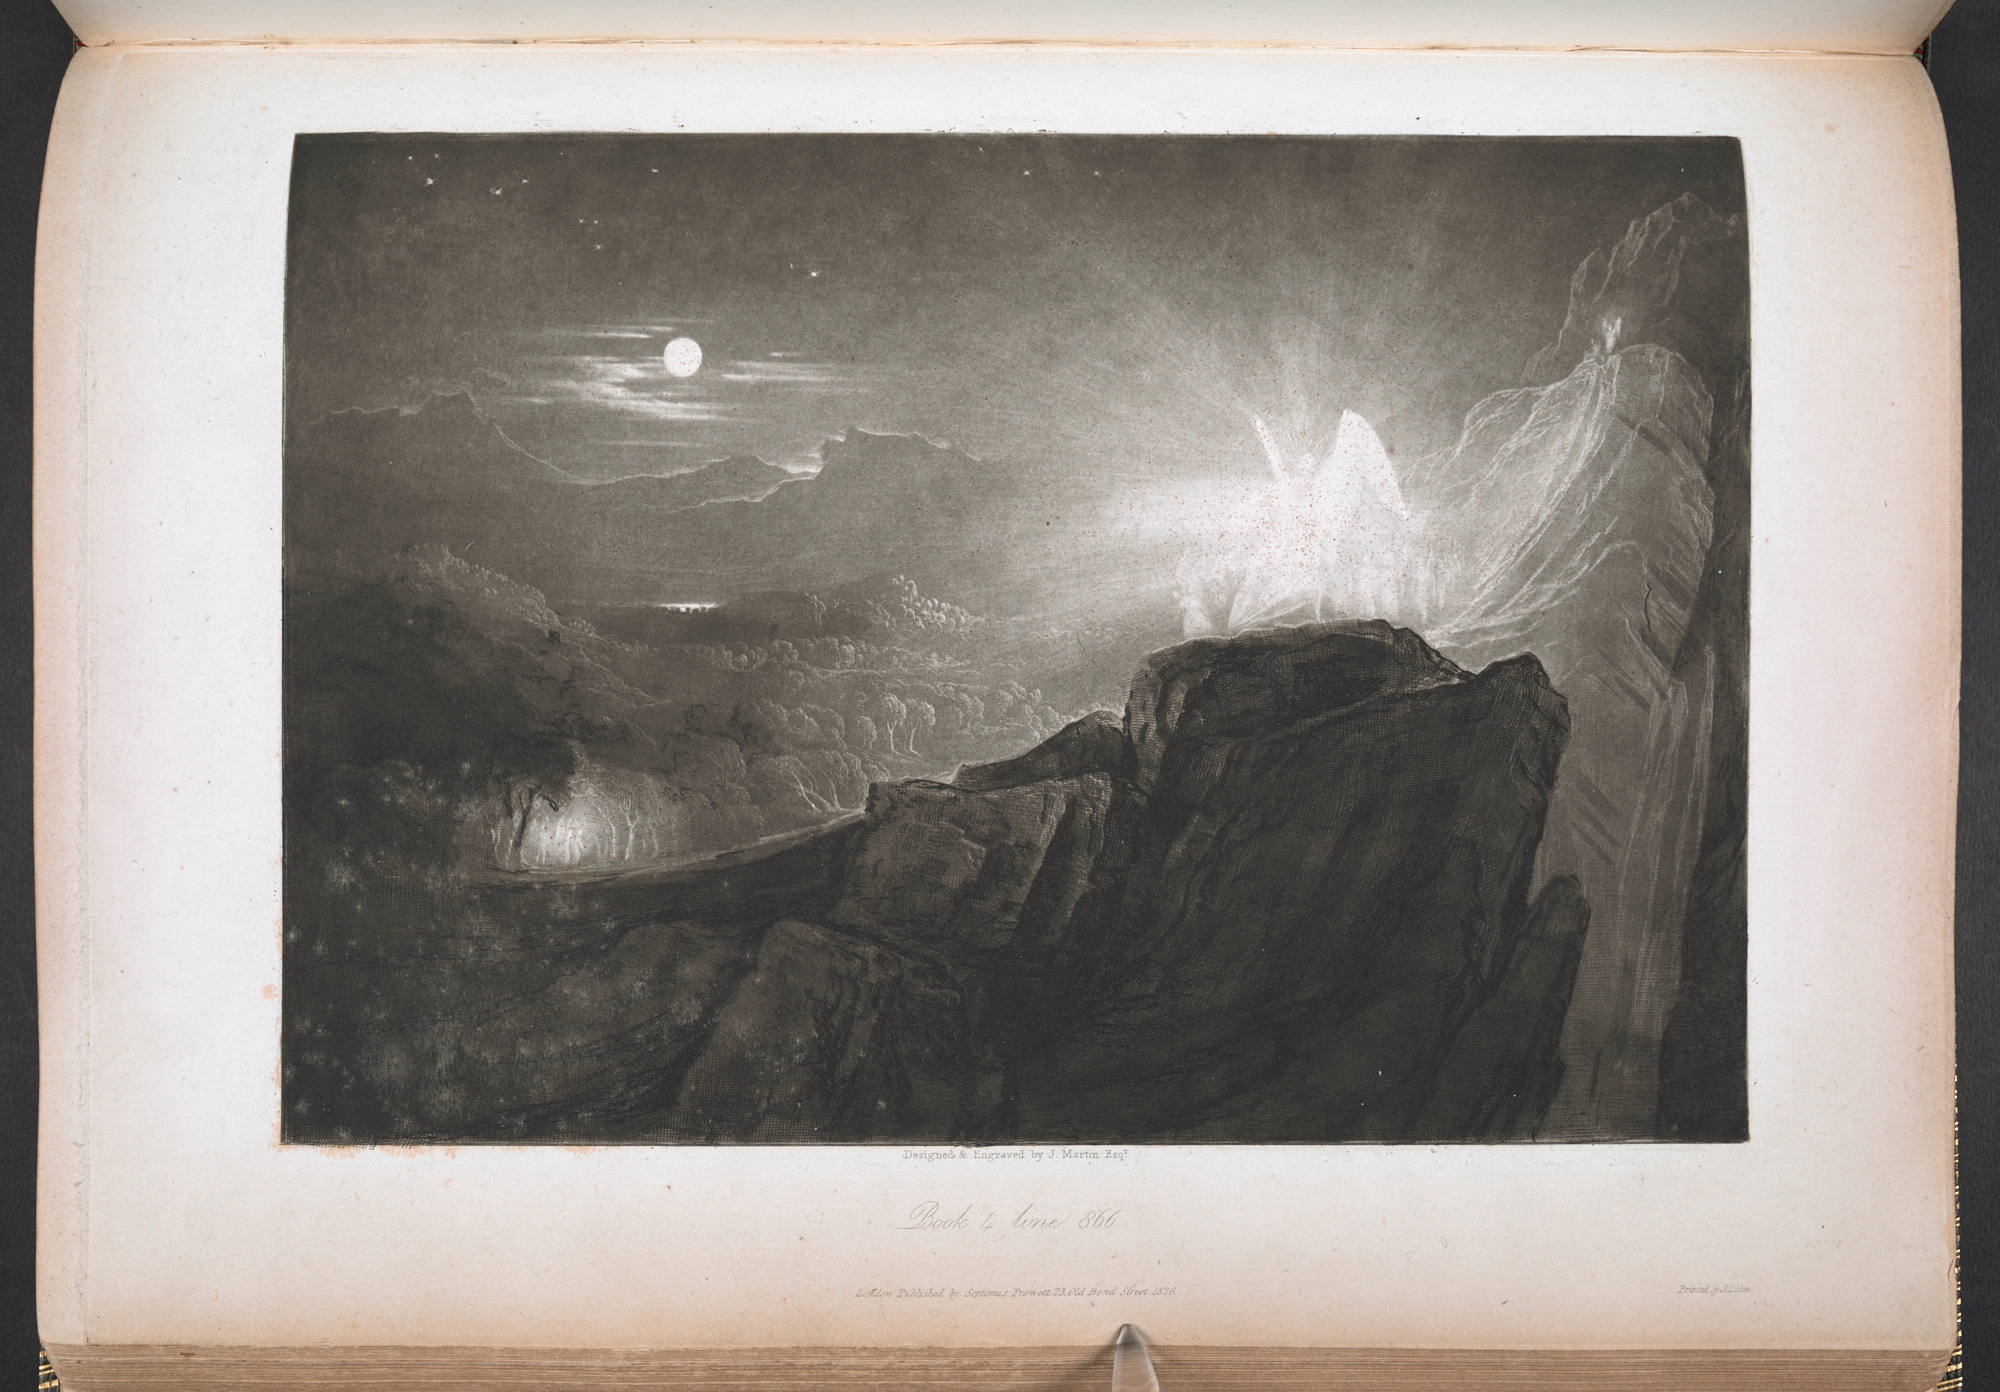 John Martin's illustrations for Paradise Lost, 1827